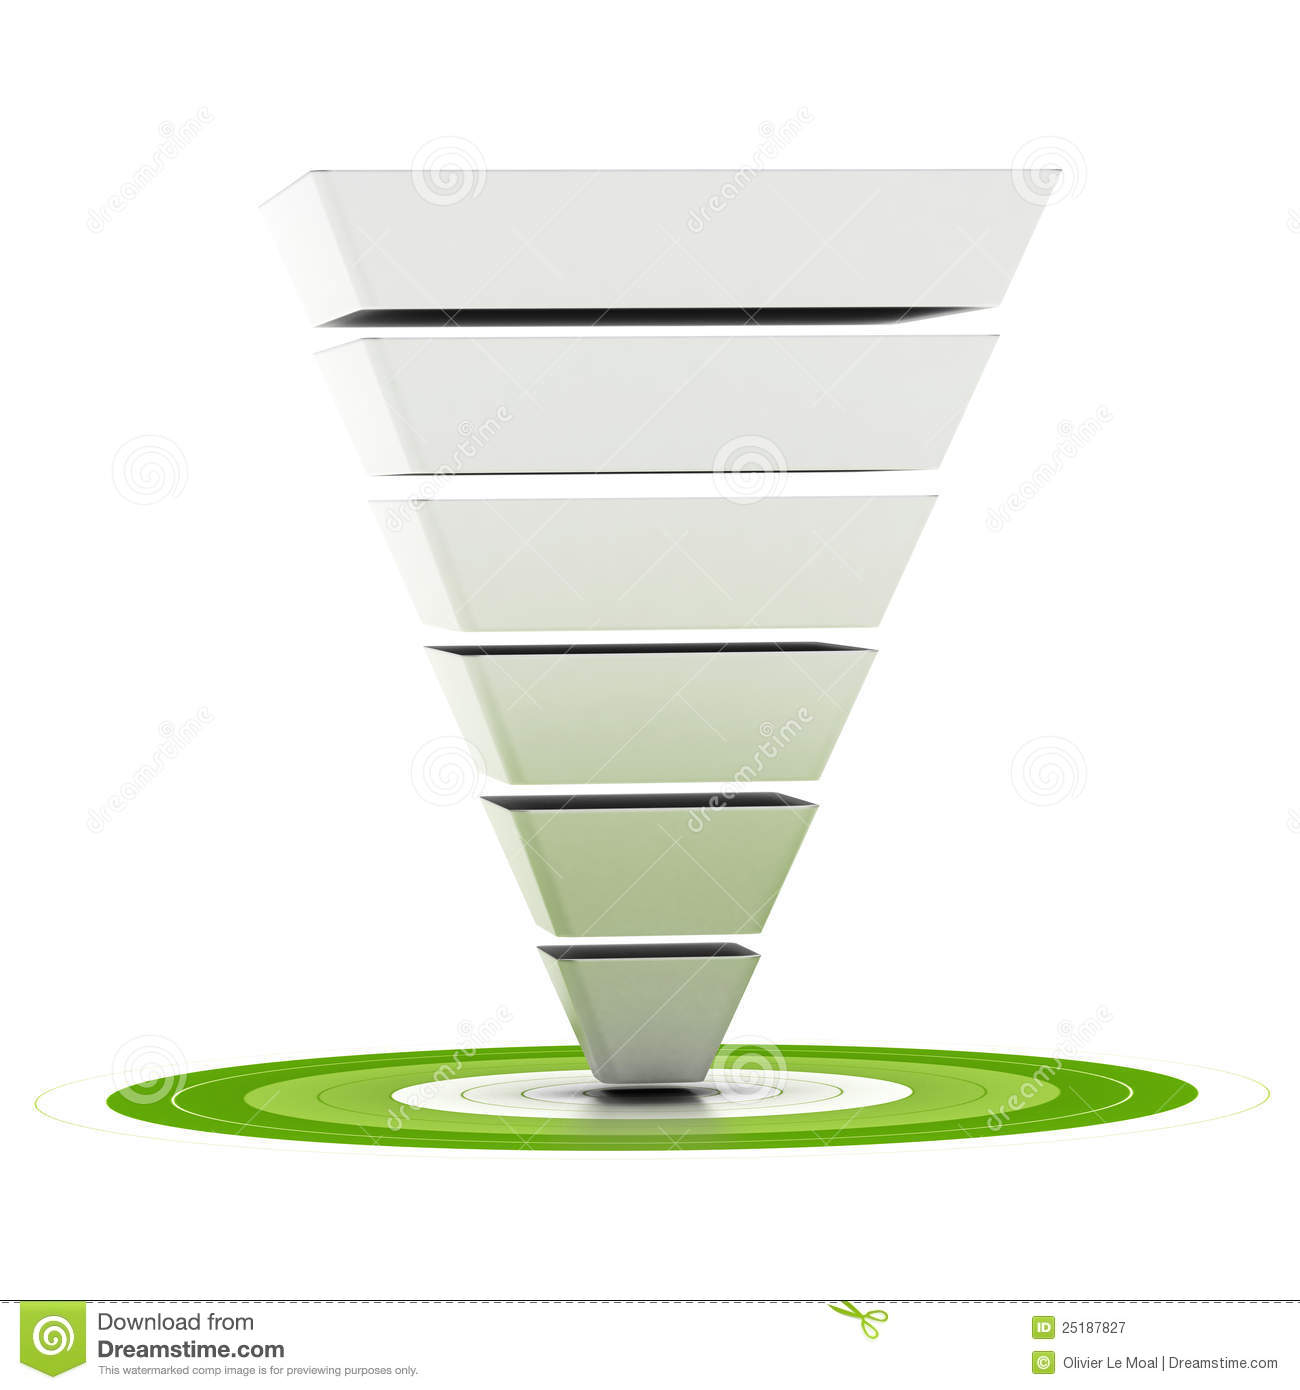 ... , can be used as a marketing funnel, diagram over white background